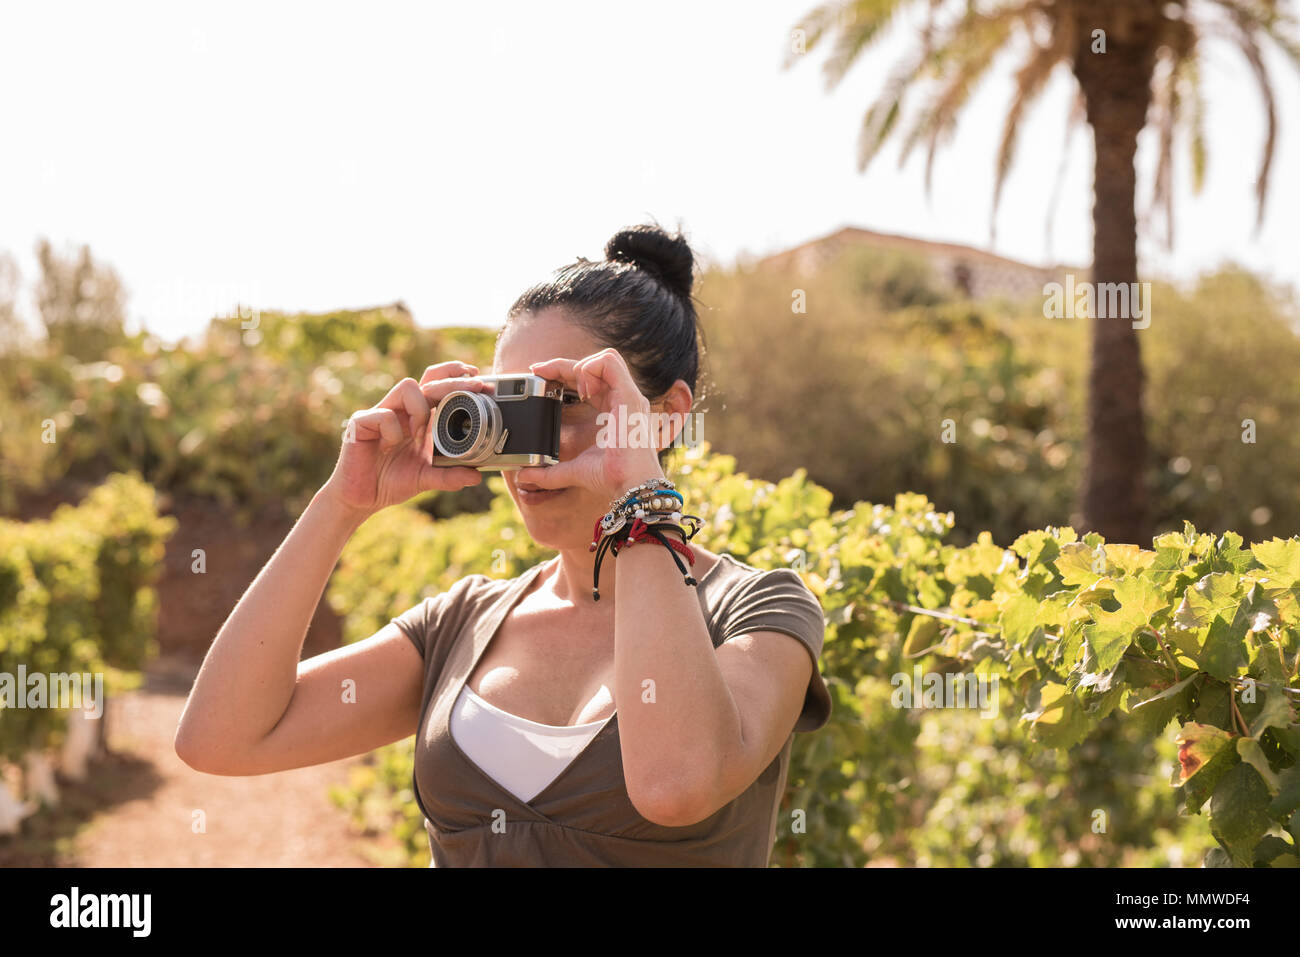 A woman taking a photo in the vineyards wearing summer clothing and her hair tied up in a bun Stock Photo